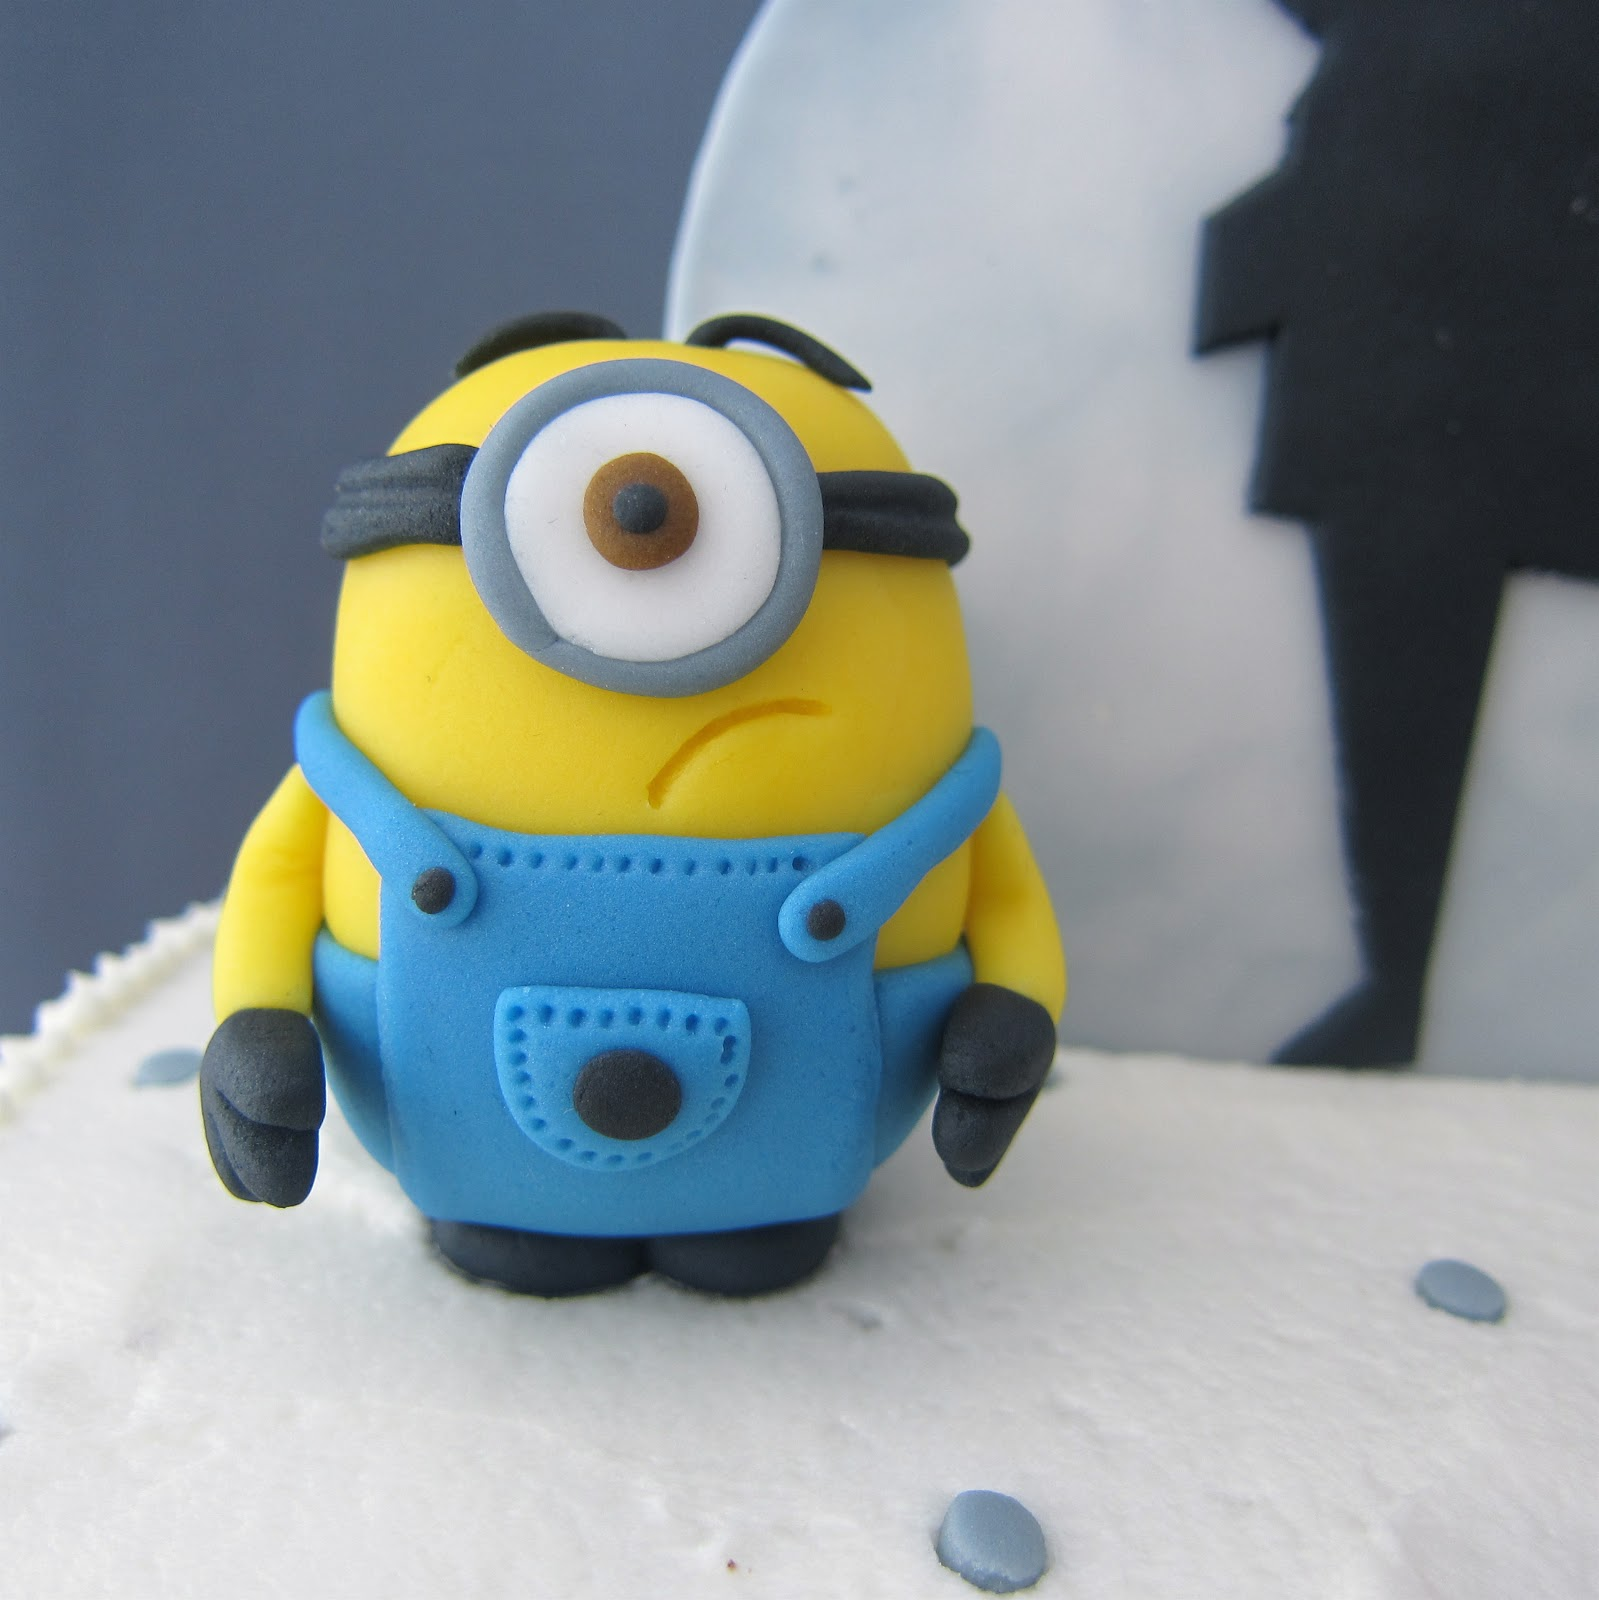 How To Make A Minion Cake With Fondant Images amp Pictures Becuo